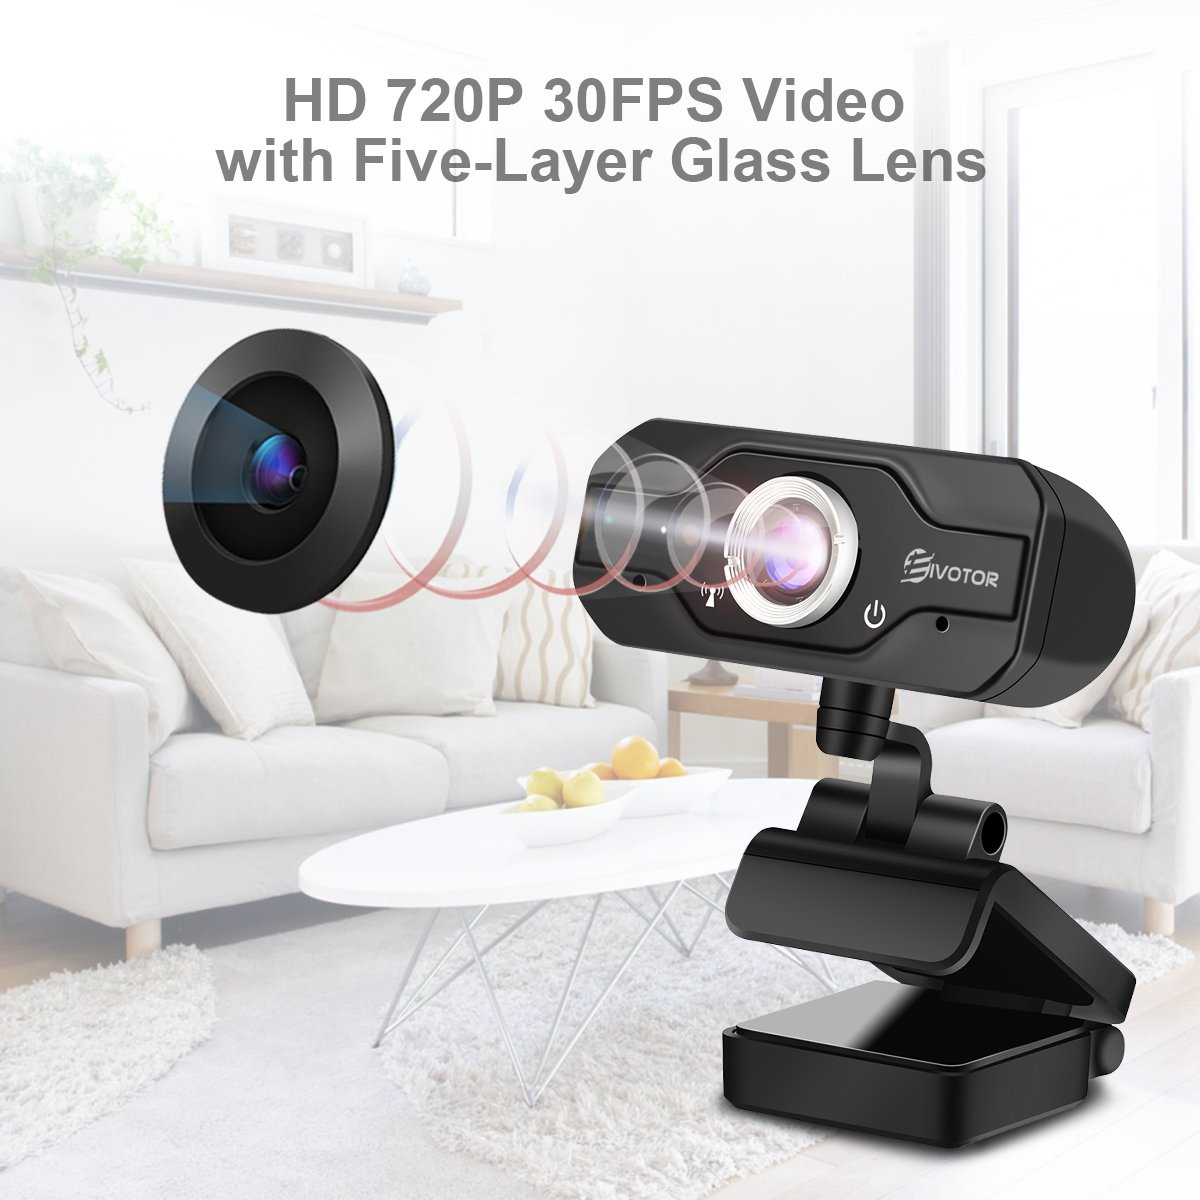 720P HD Webcam, EIVOTOR USB Mini Computer Camera with Built-in Microphone for Laptops and Desktop,Black by EIVOTOR (Image #2)